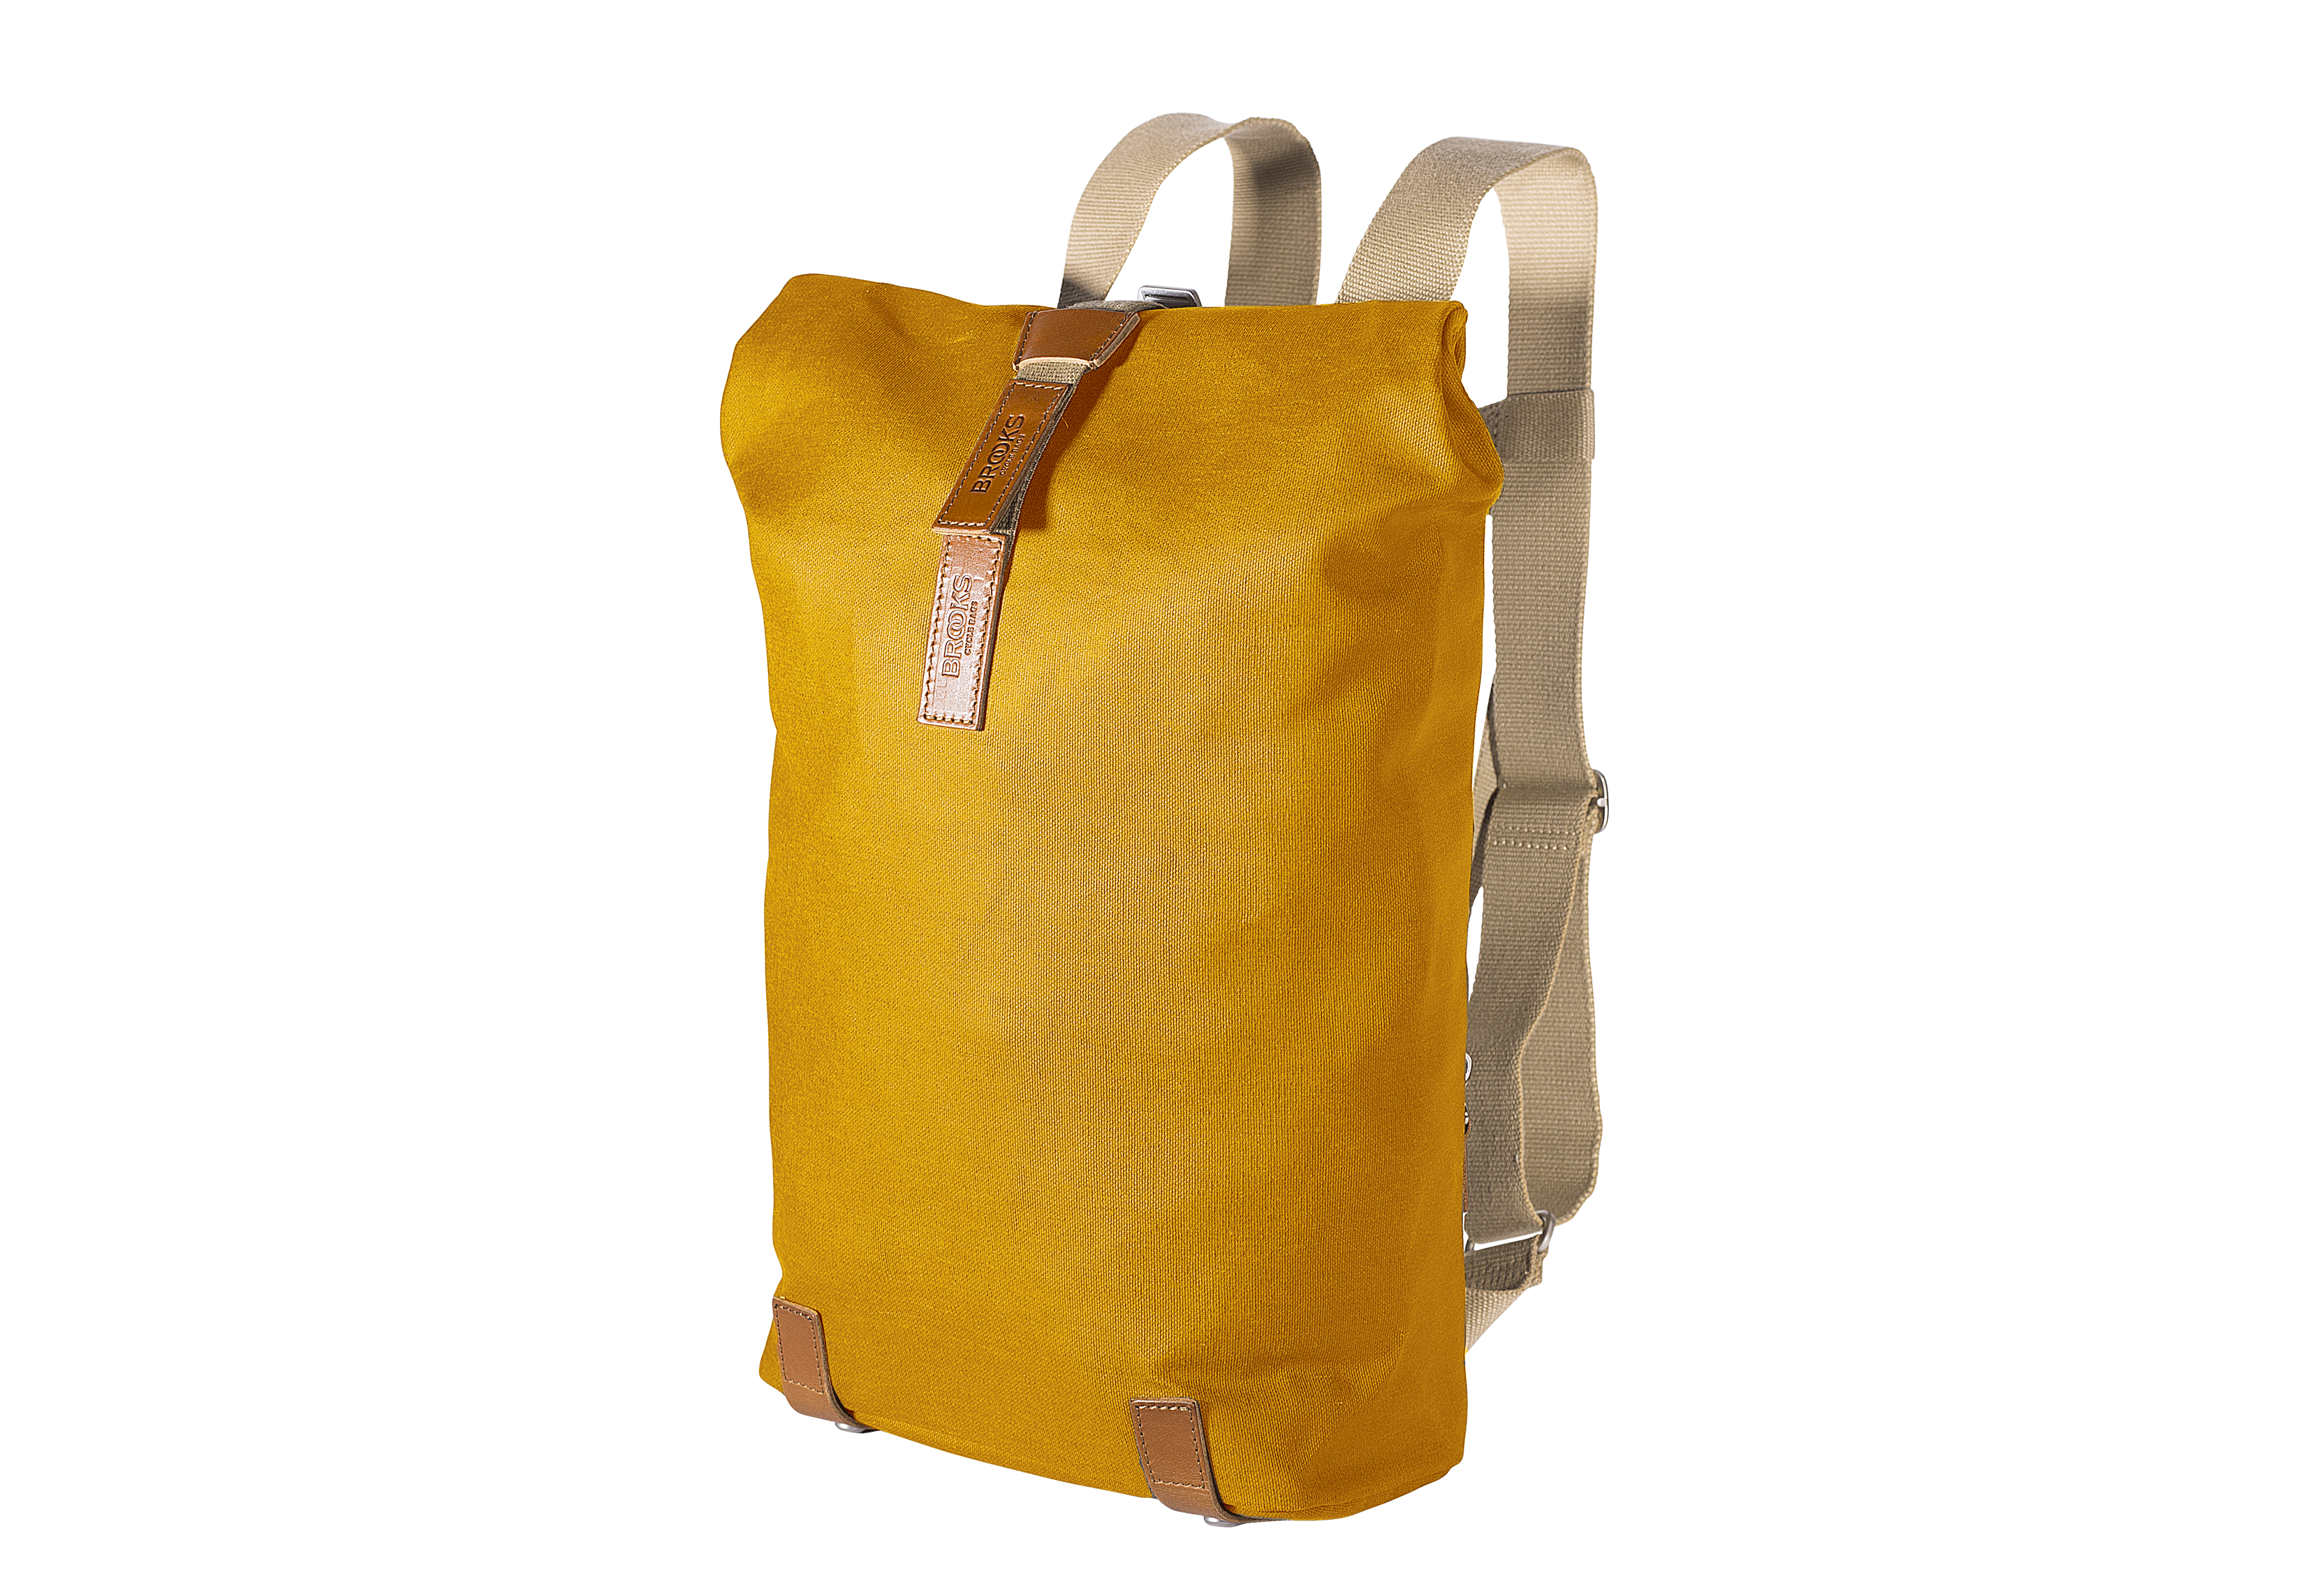 f25020c3f36 Brooks Backpack Pickwick Small Curry. The Pickwick is a versatile canvas  roll-top ...